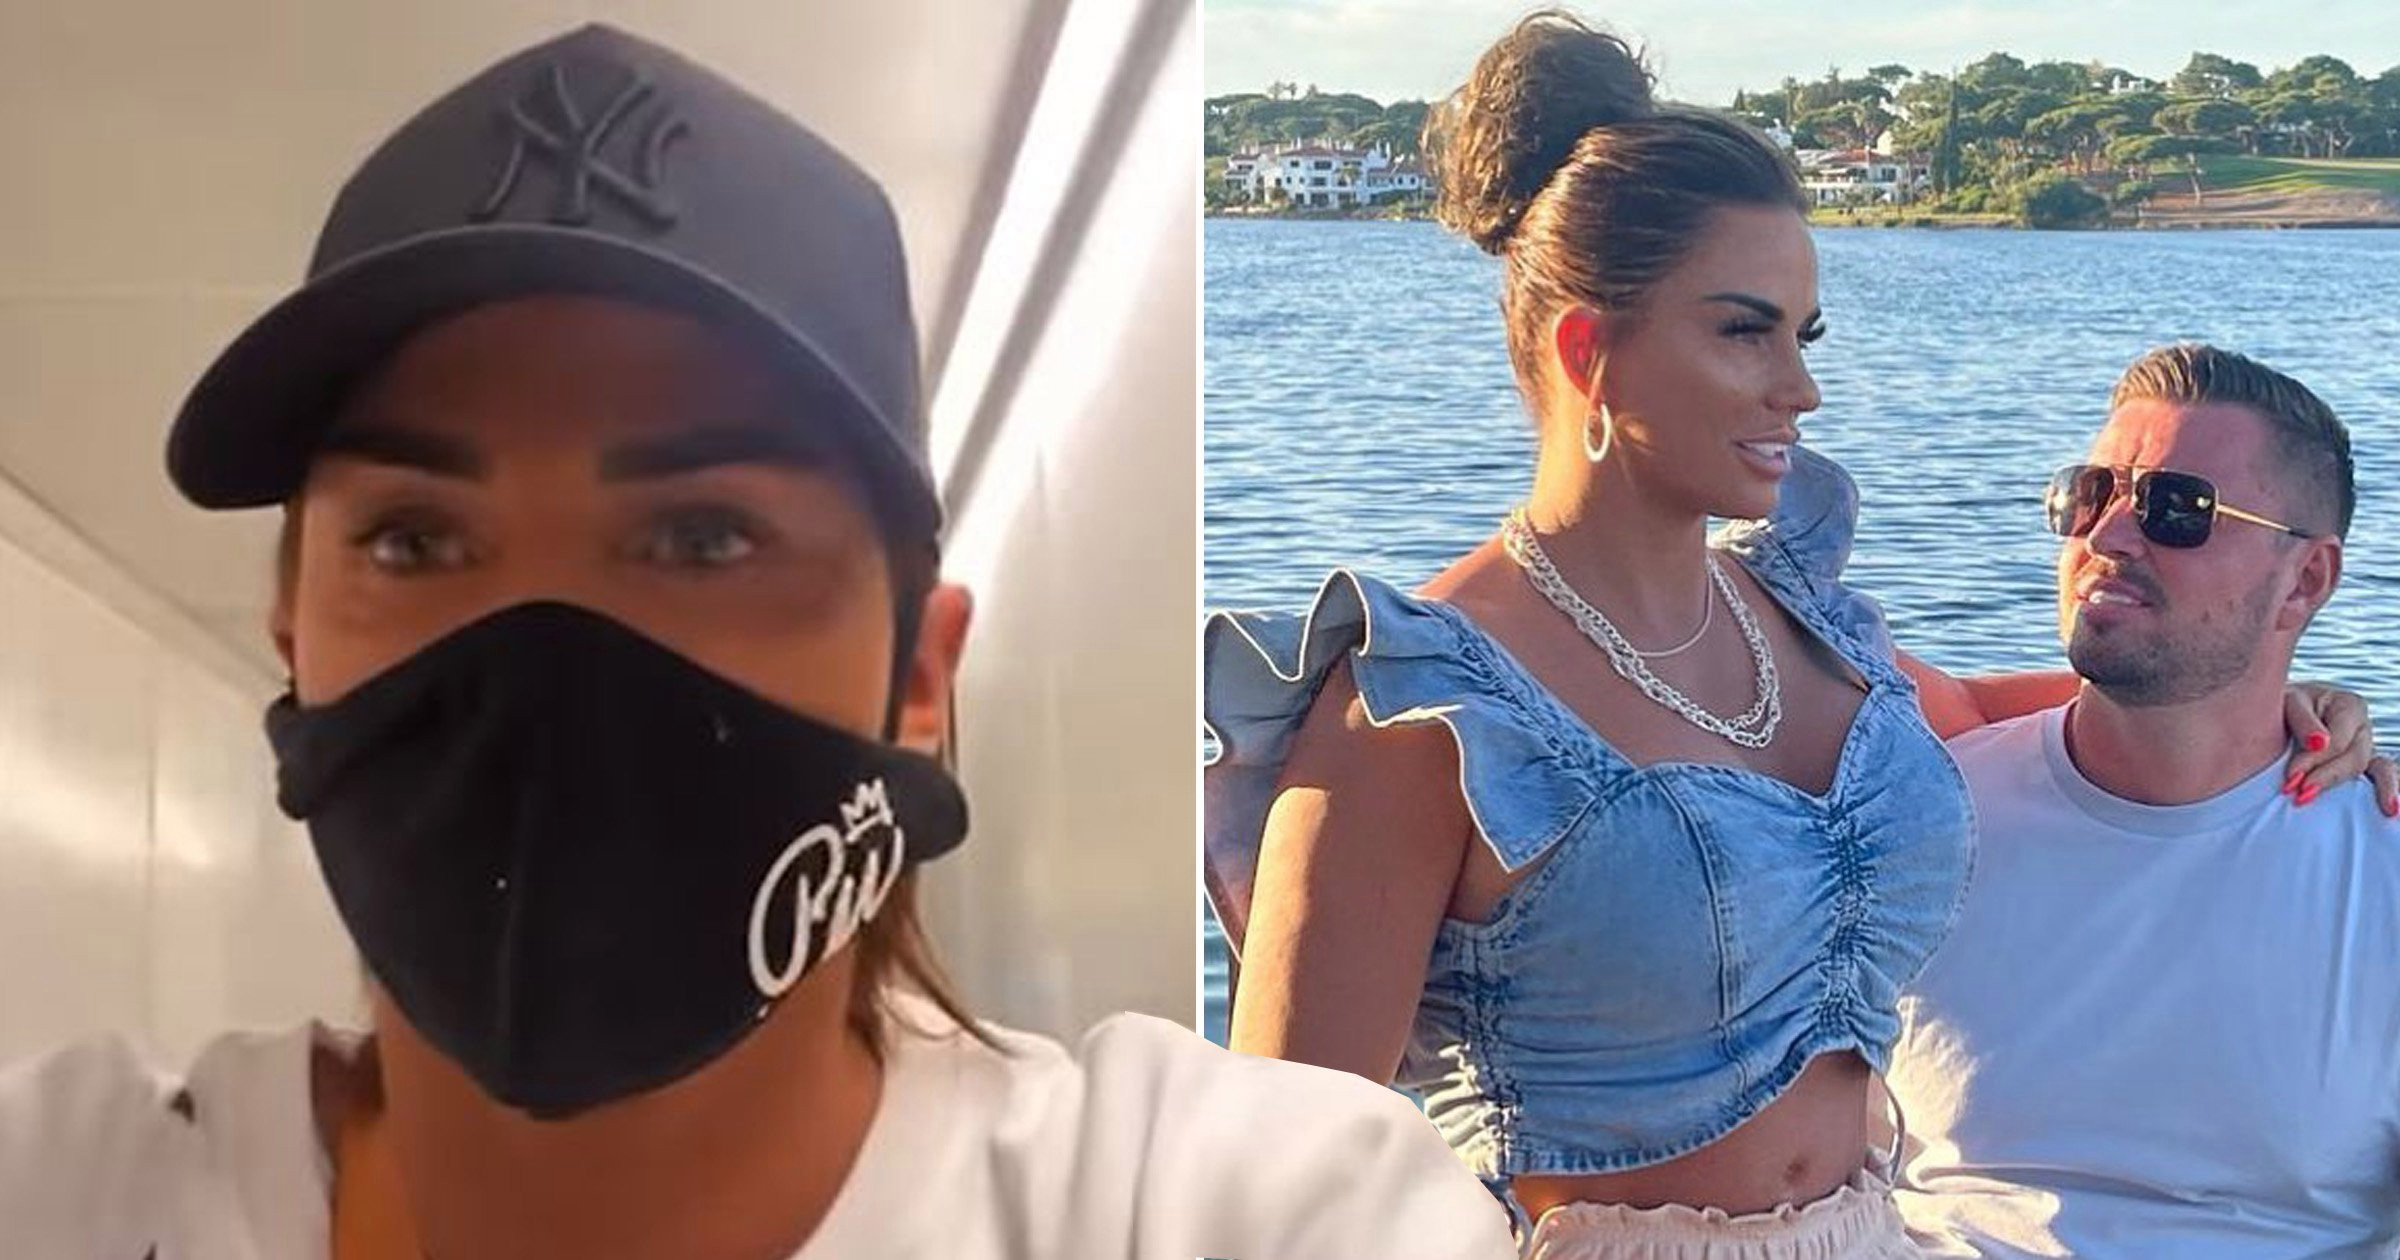 Katie Price's party claim Covid checks 'aren't in place' on UK return